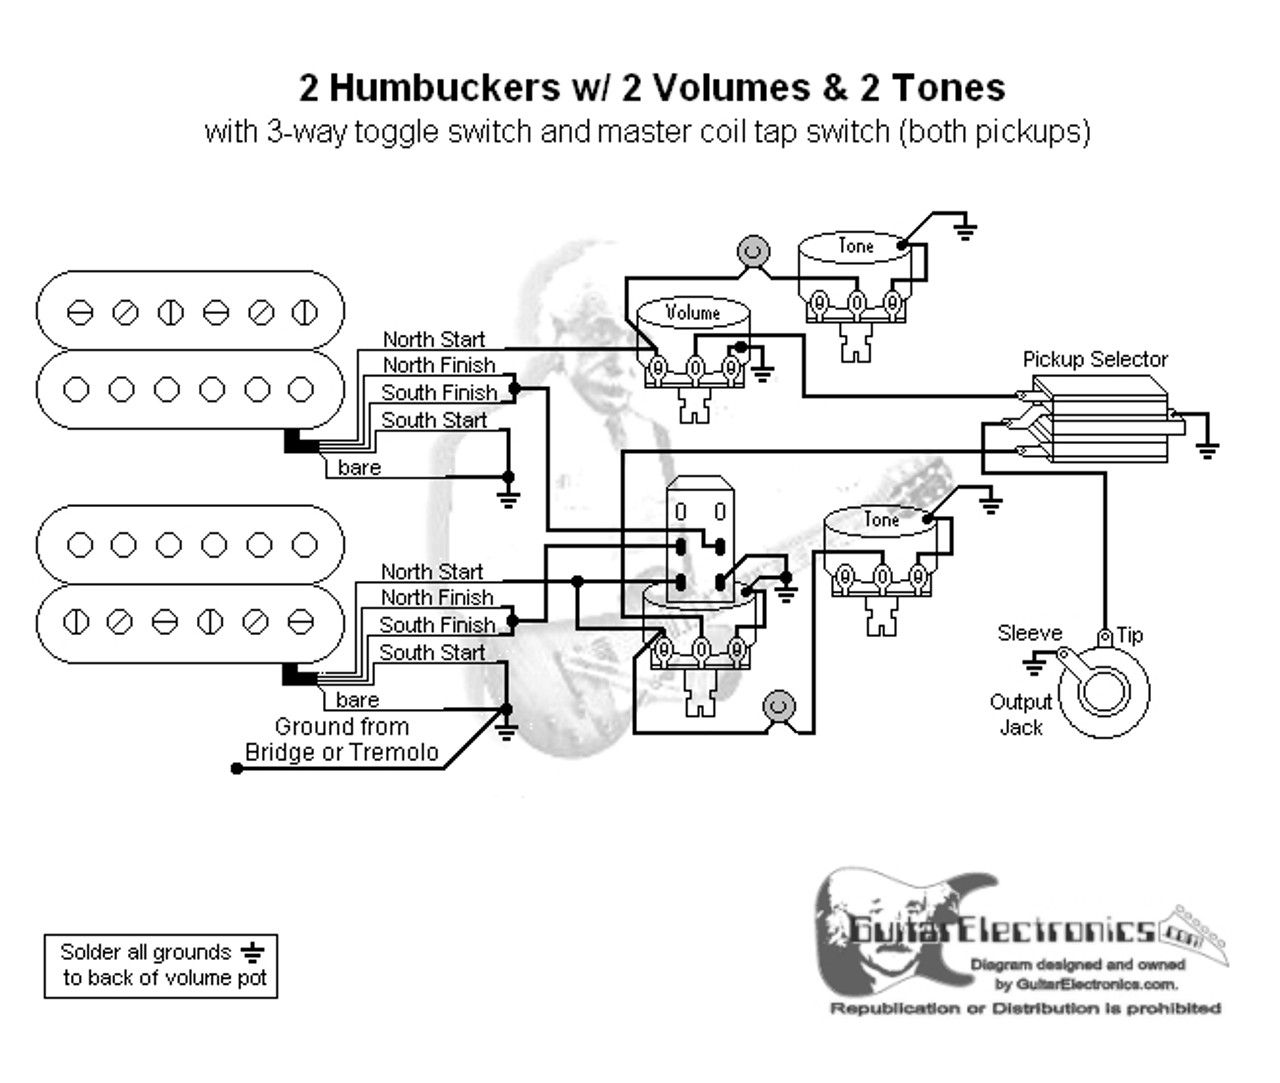 2 Humbuckers/3-Way Toggle Switch/2 Volumes/2 Tones/Coil ... on switch circuit diagram, switch lights, network switch diagram, relay switch diagram, wall switch diagram, switch starter diagram, 3-way switch diagram, switch battery diagram, electrical outlets diagram, switch socket diagram, rocker switch diagram, switch outlets diagram,